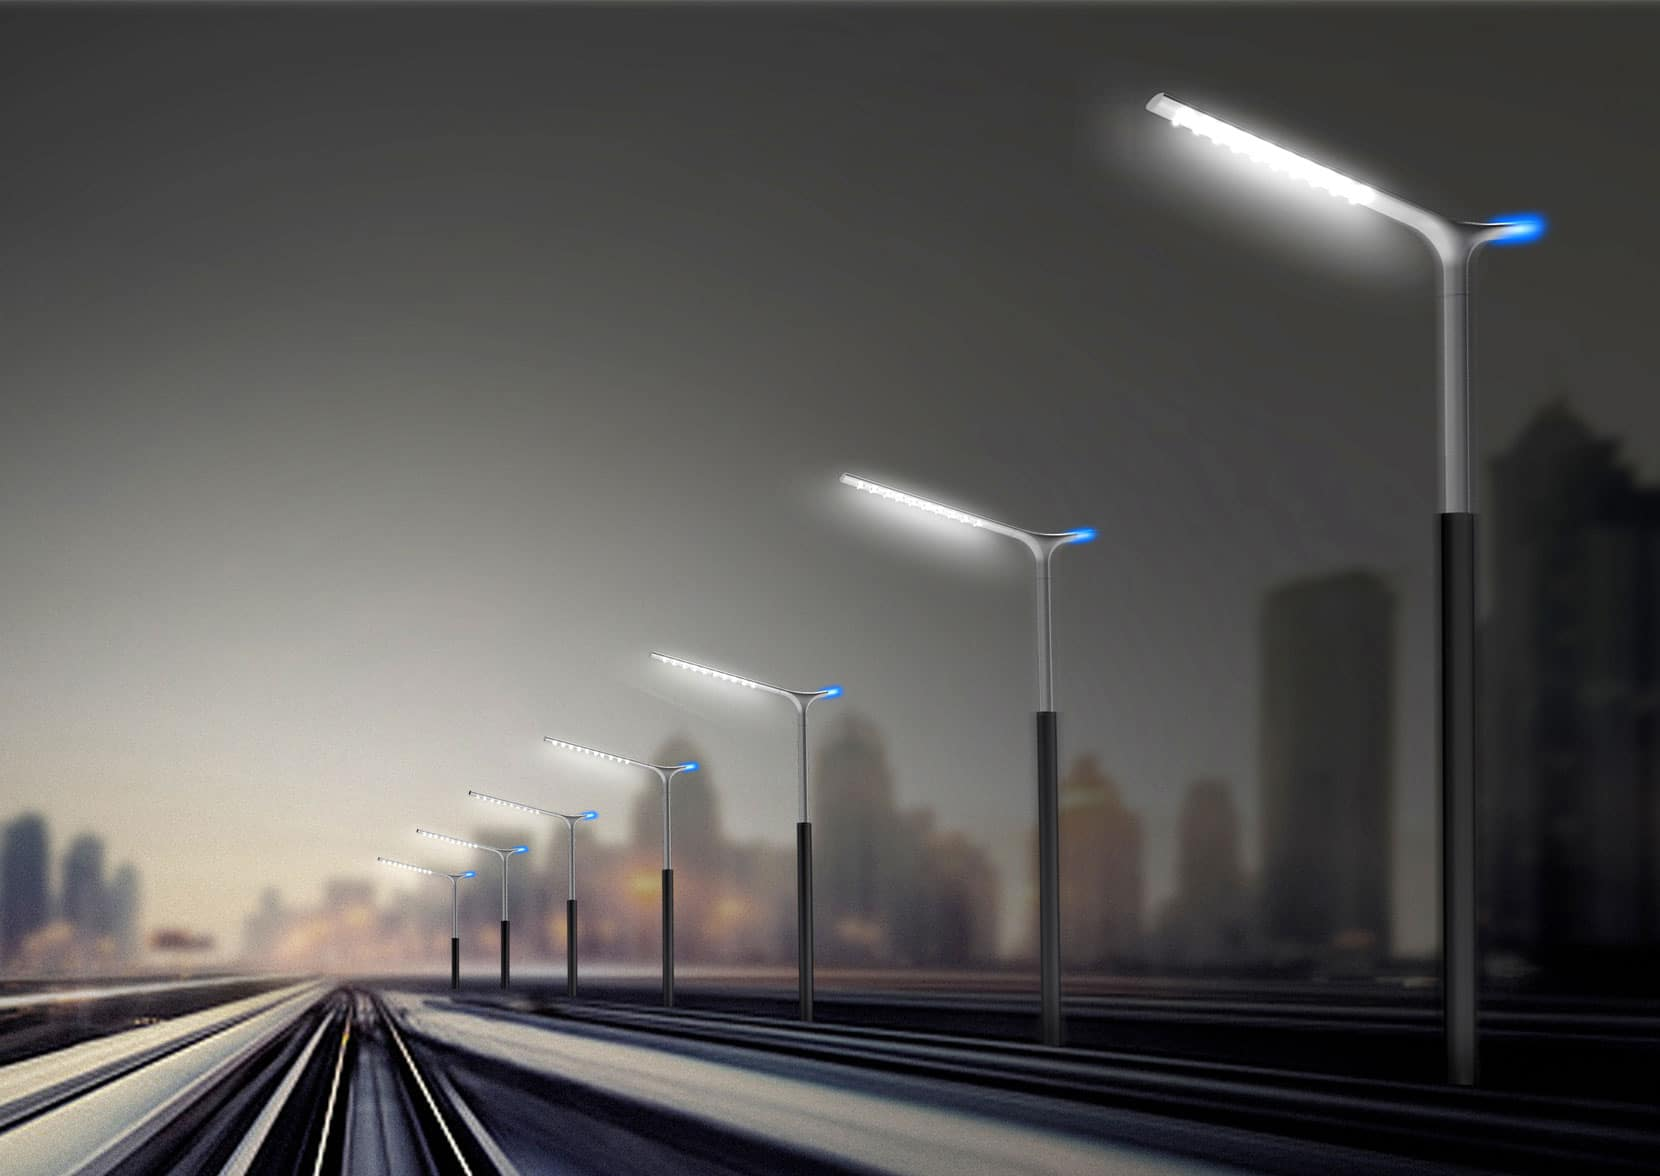 Lighting Basement Washroom Stairs: LED Street Light Replacement Project Launched In Delhi